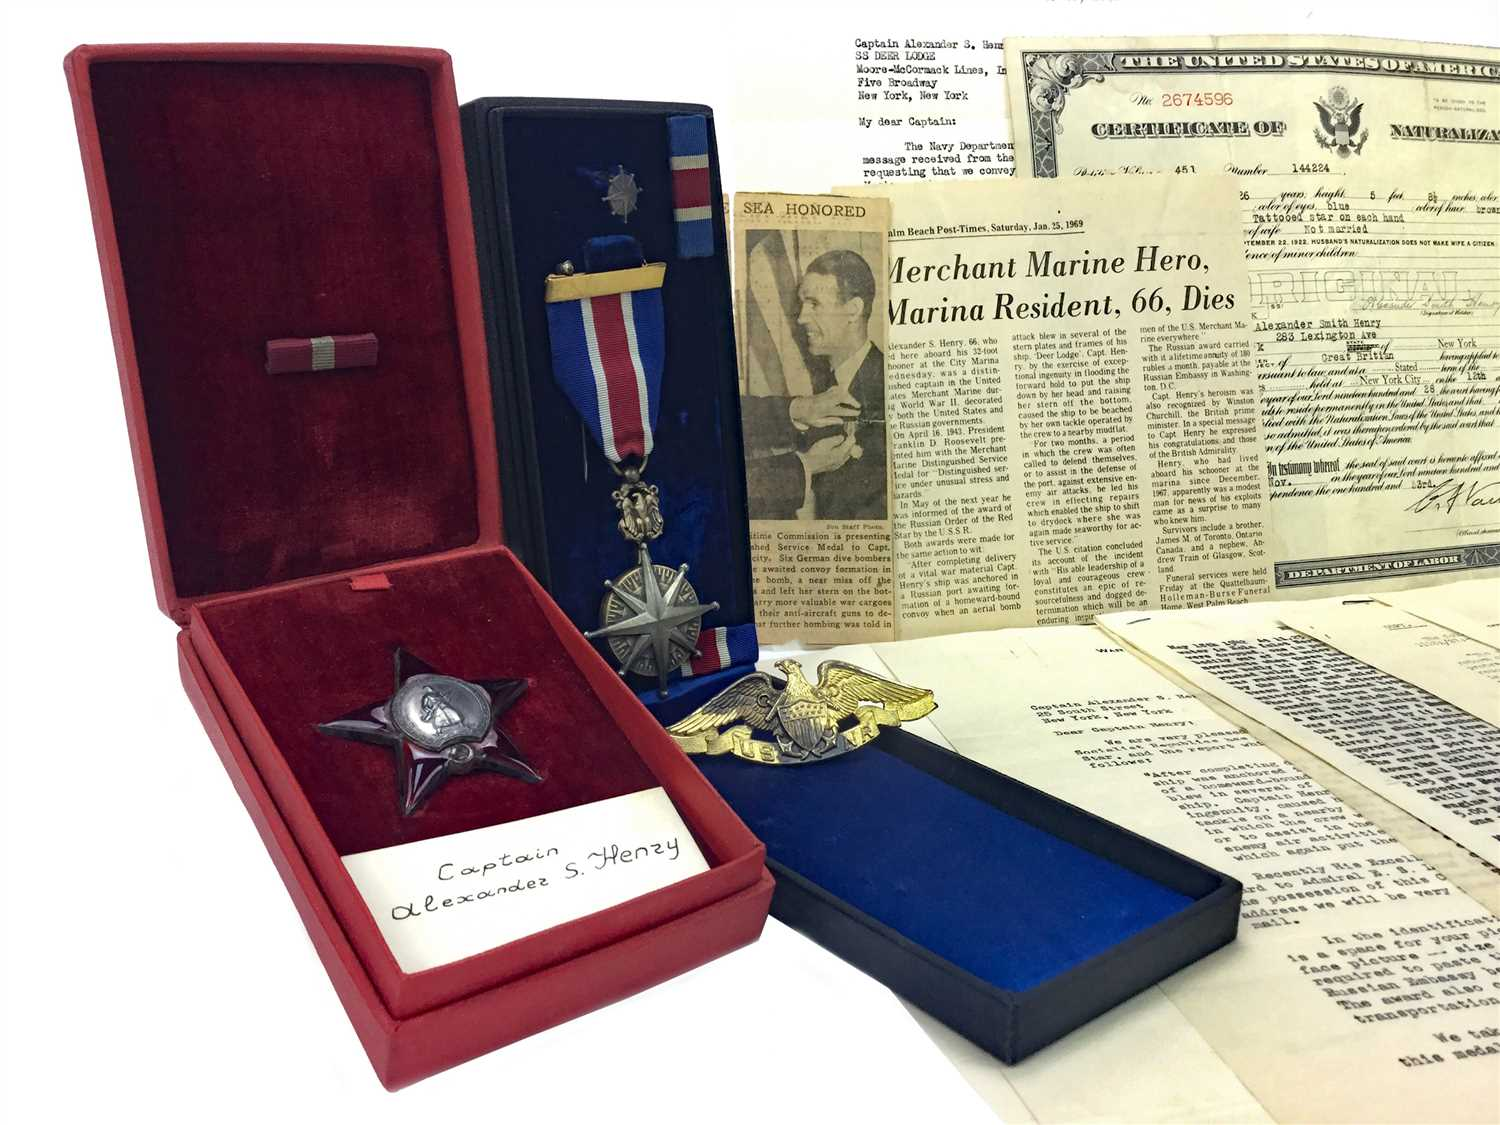 Lot 1544 - A UNITED STATES MERCHANT MARINE DISTINGUISHED SERVICE MEDAL